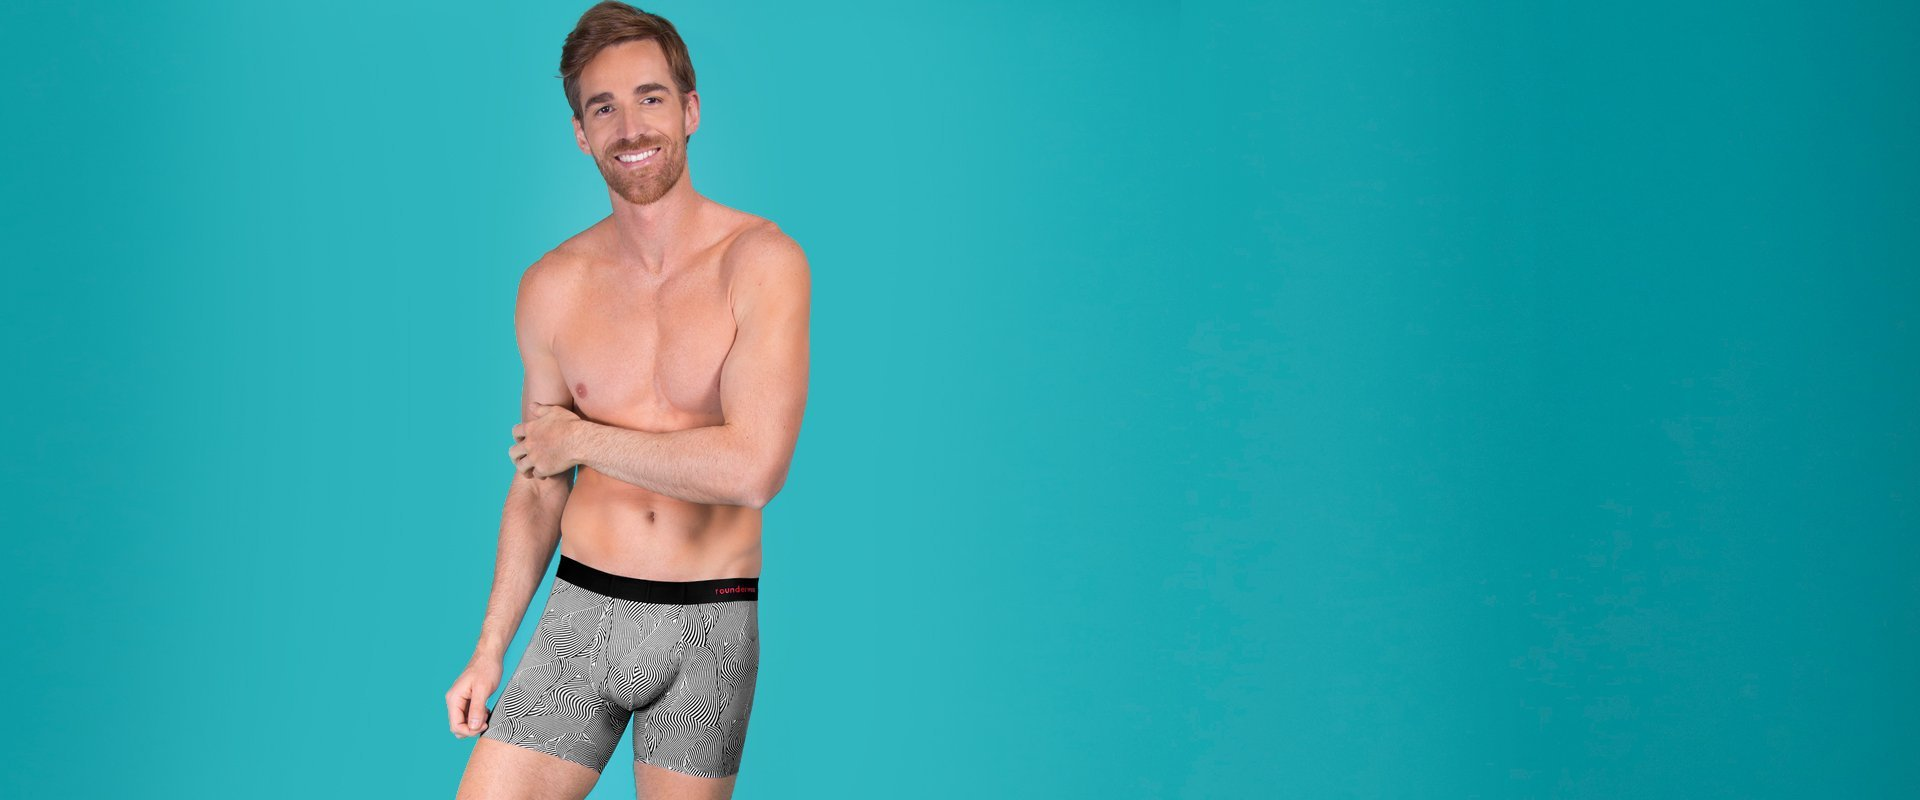 Rounderwear Boxer Brief Fashion - Boxer Brief - Rounderbum Shark Tank Men Shapewear and Underwear